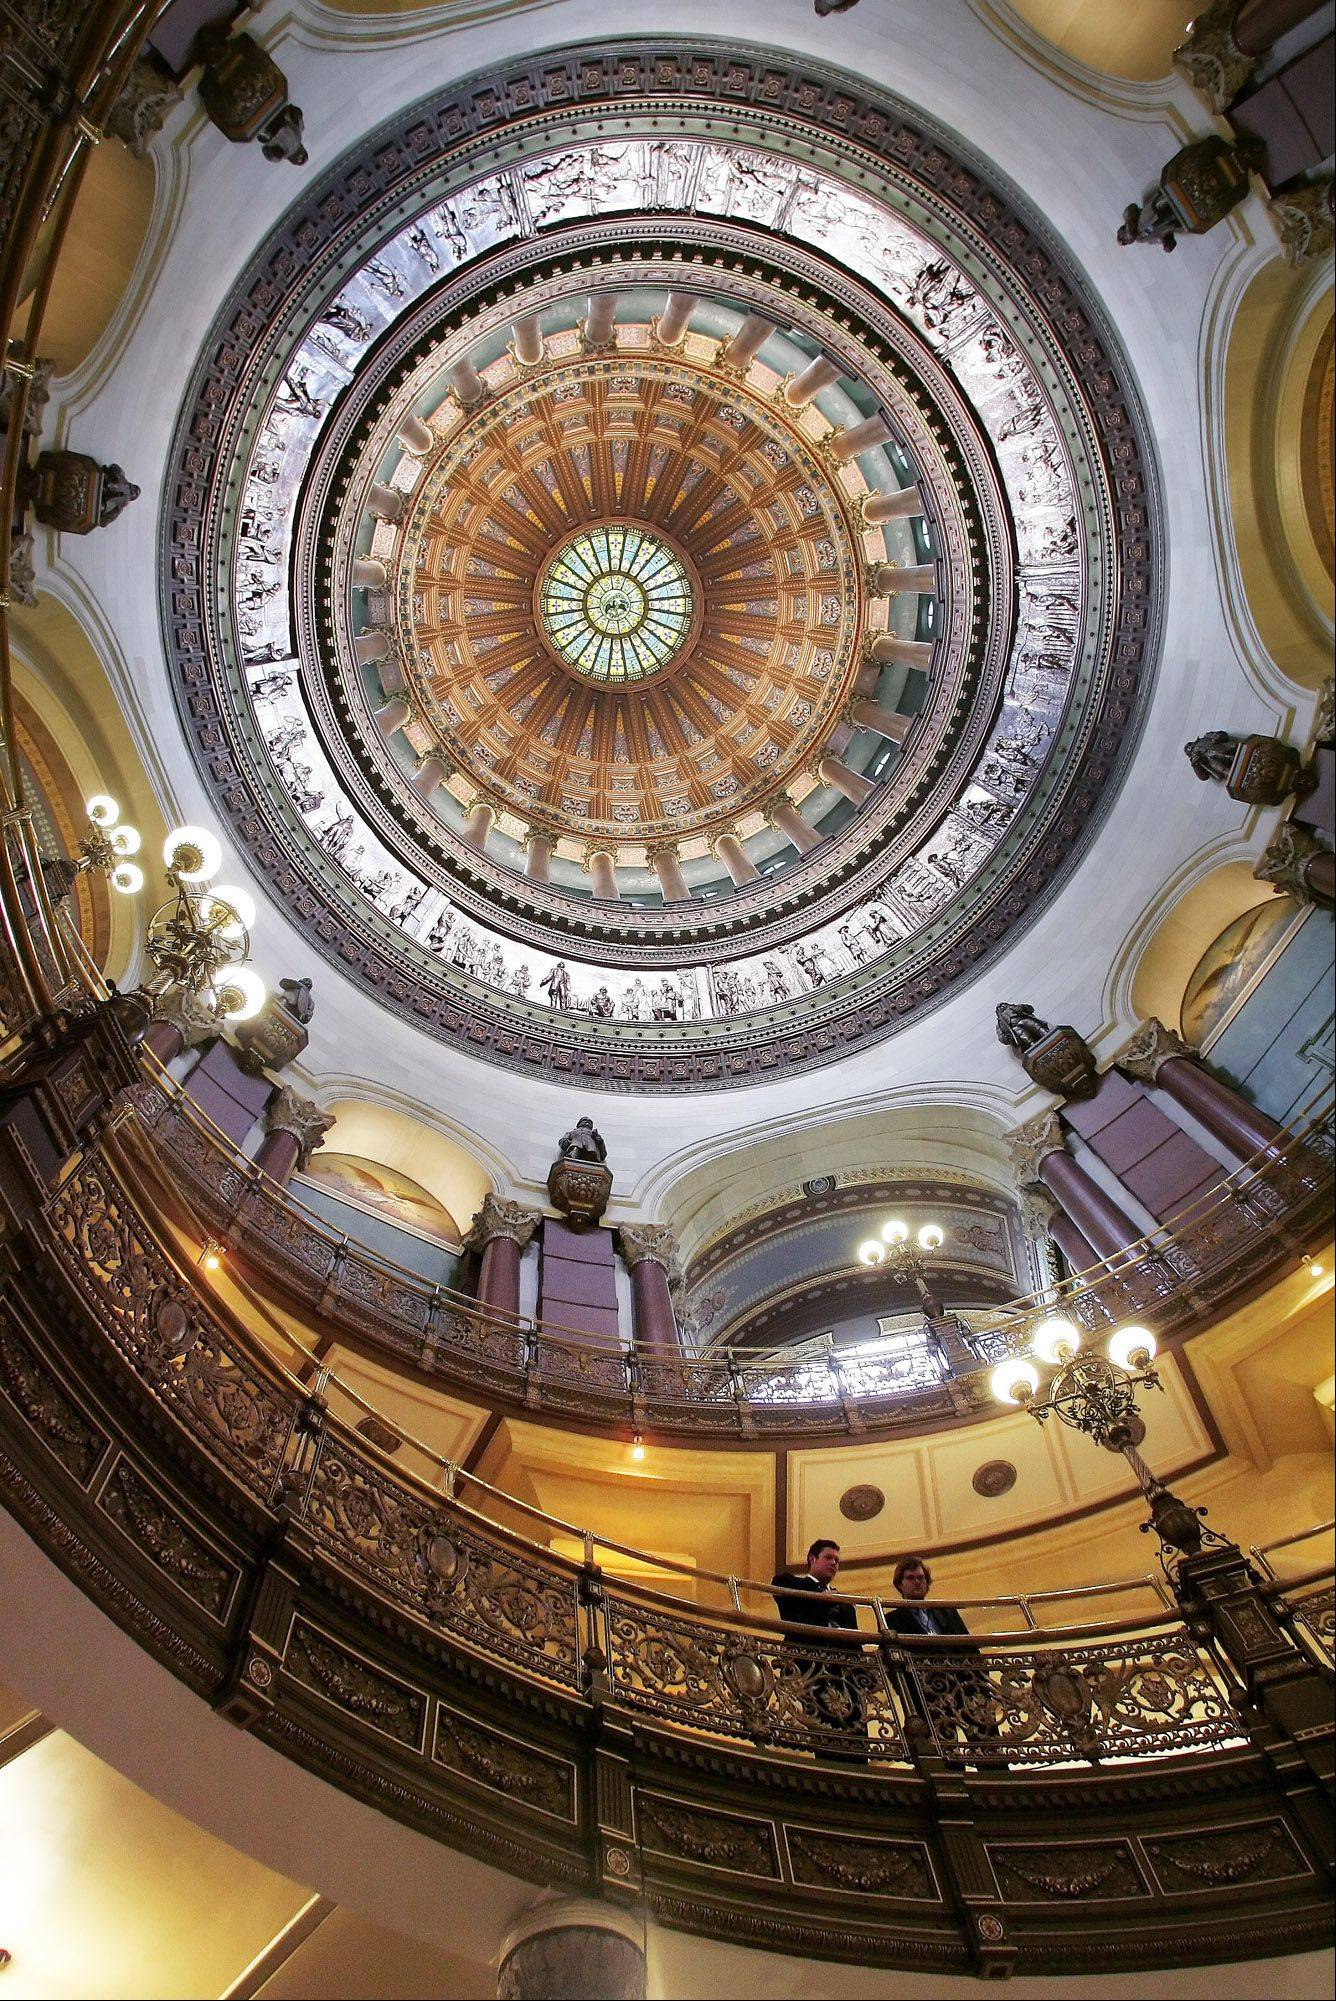 A large group of lame duck lawmakers could set the stage for votes on several controversial issues at the state Capitol.